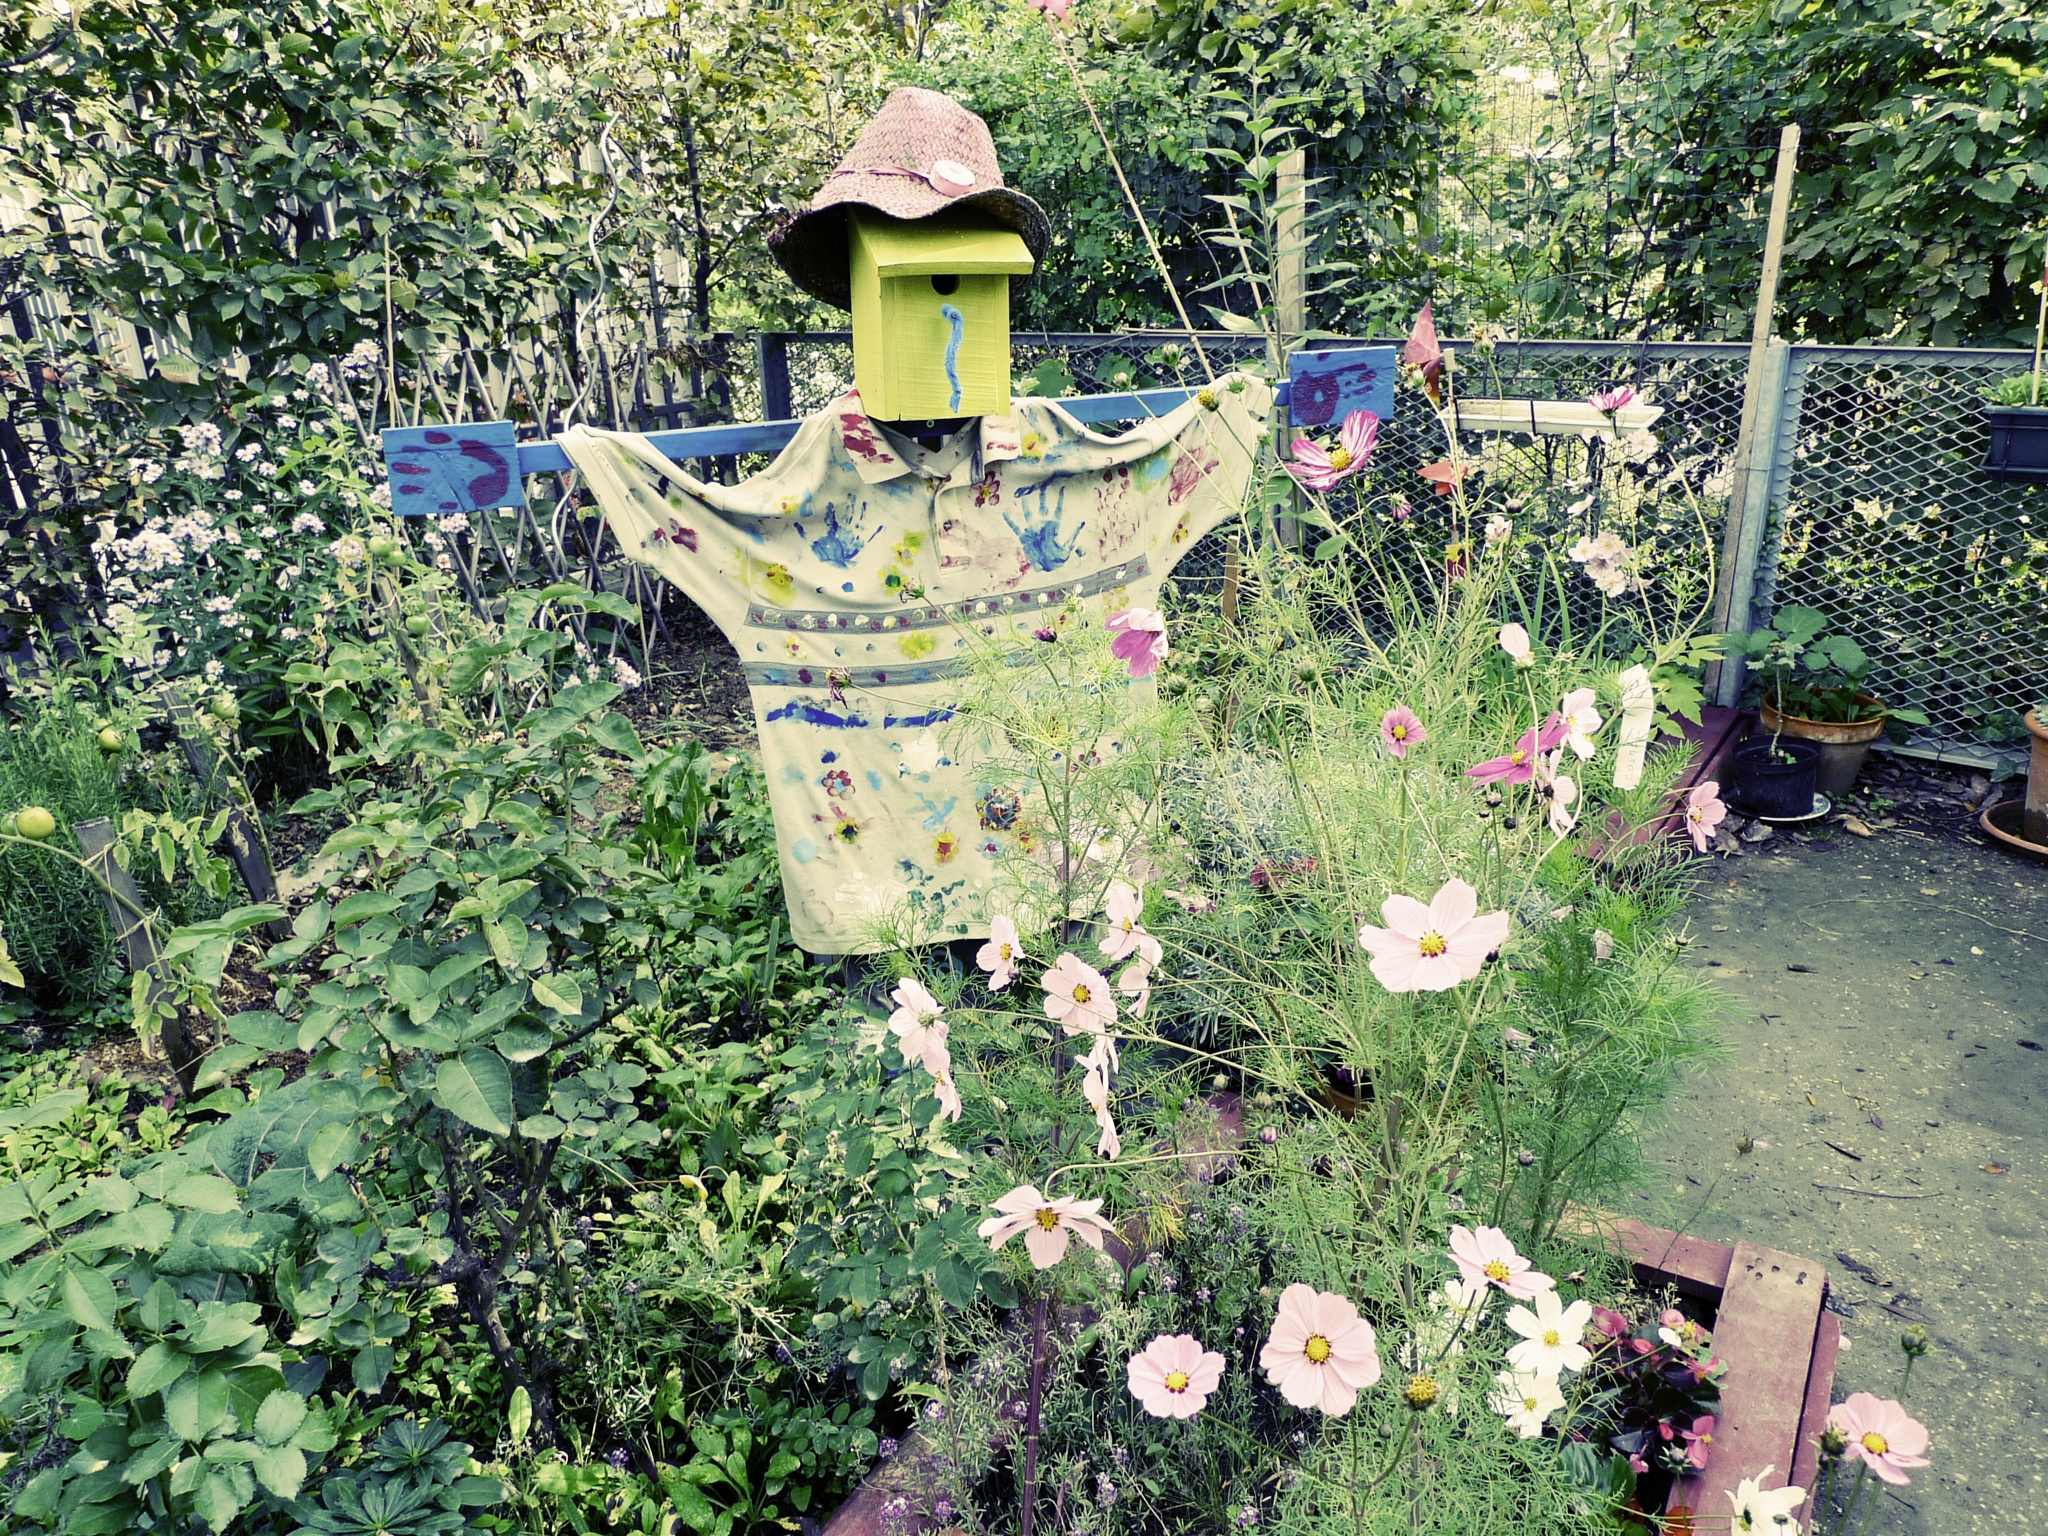 Community garden with scarecrow, Martin-Luther-King park, Paris by Martine de Lajudie